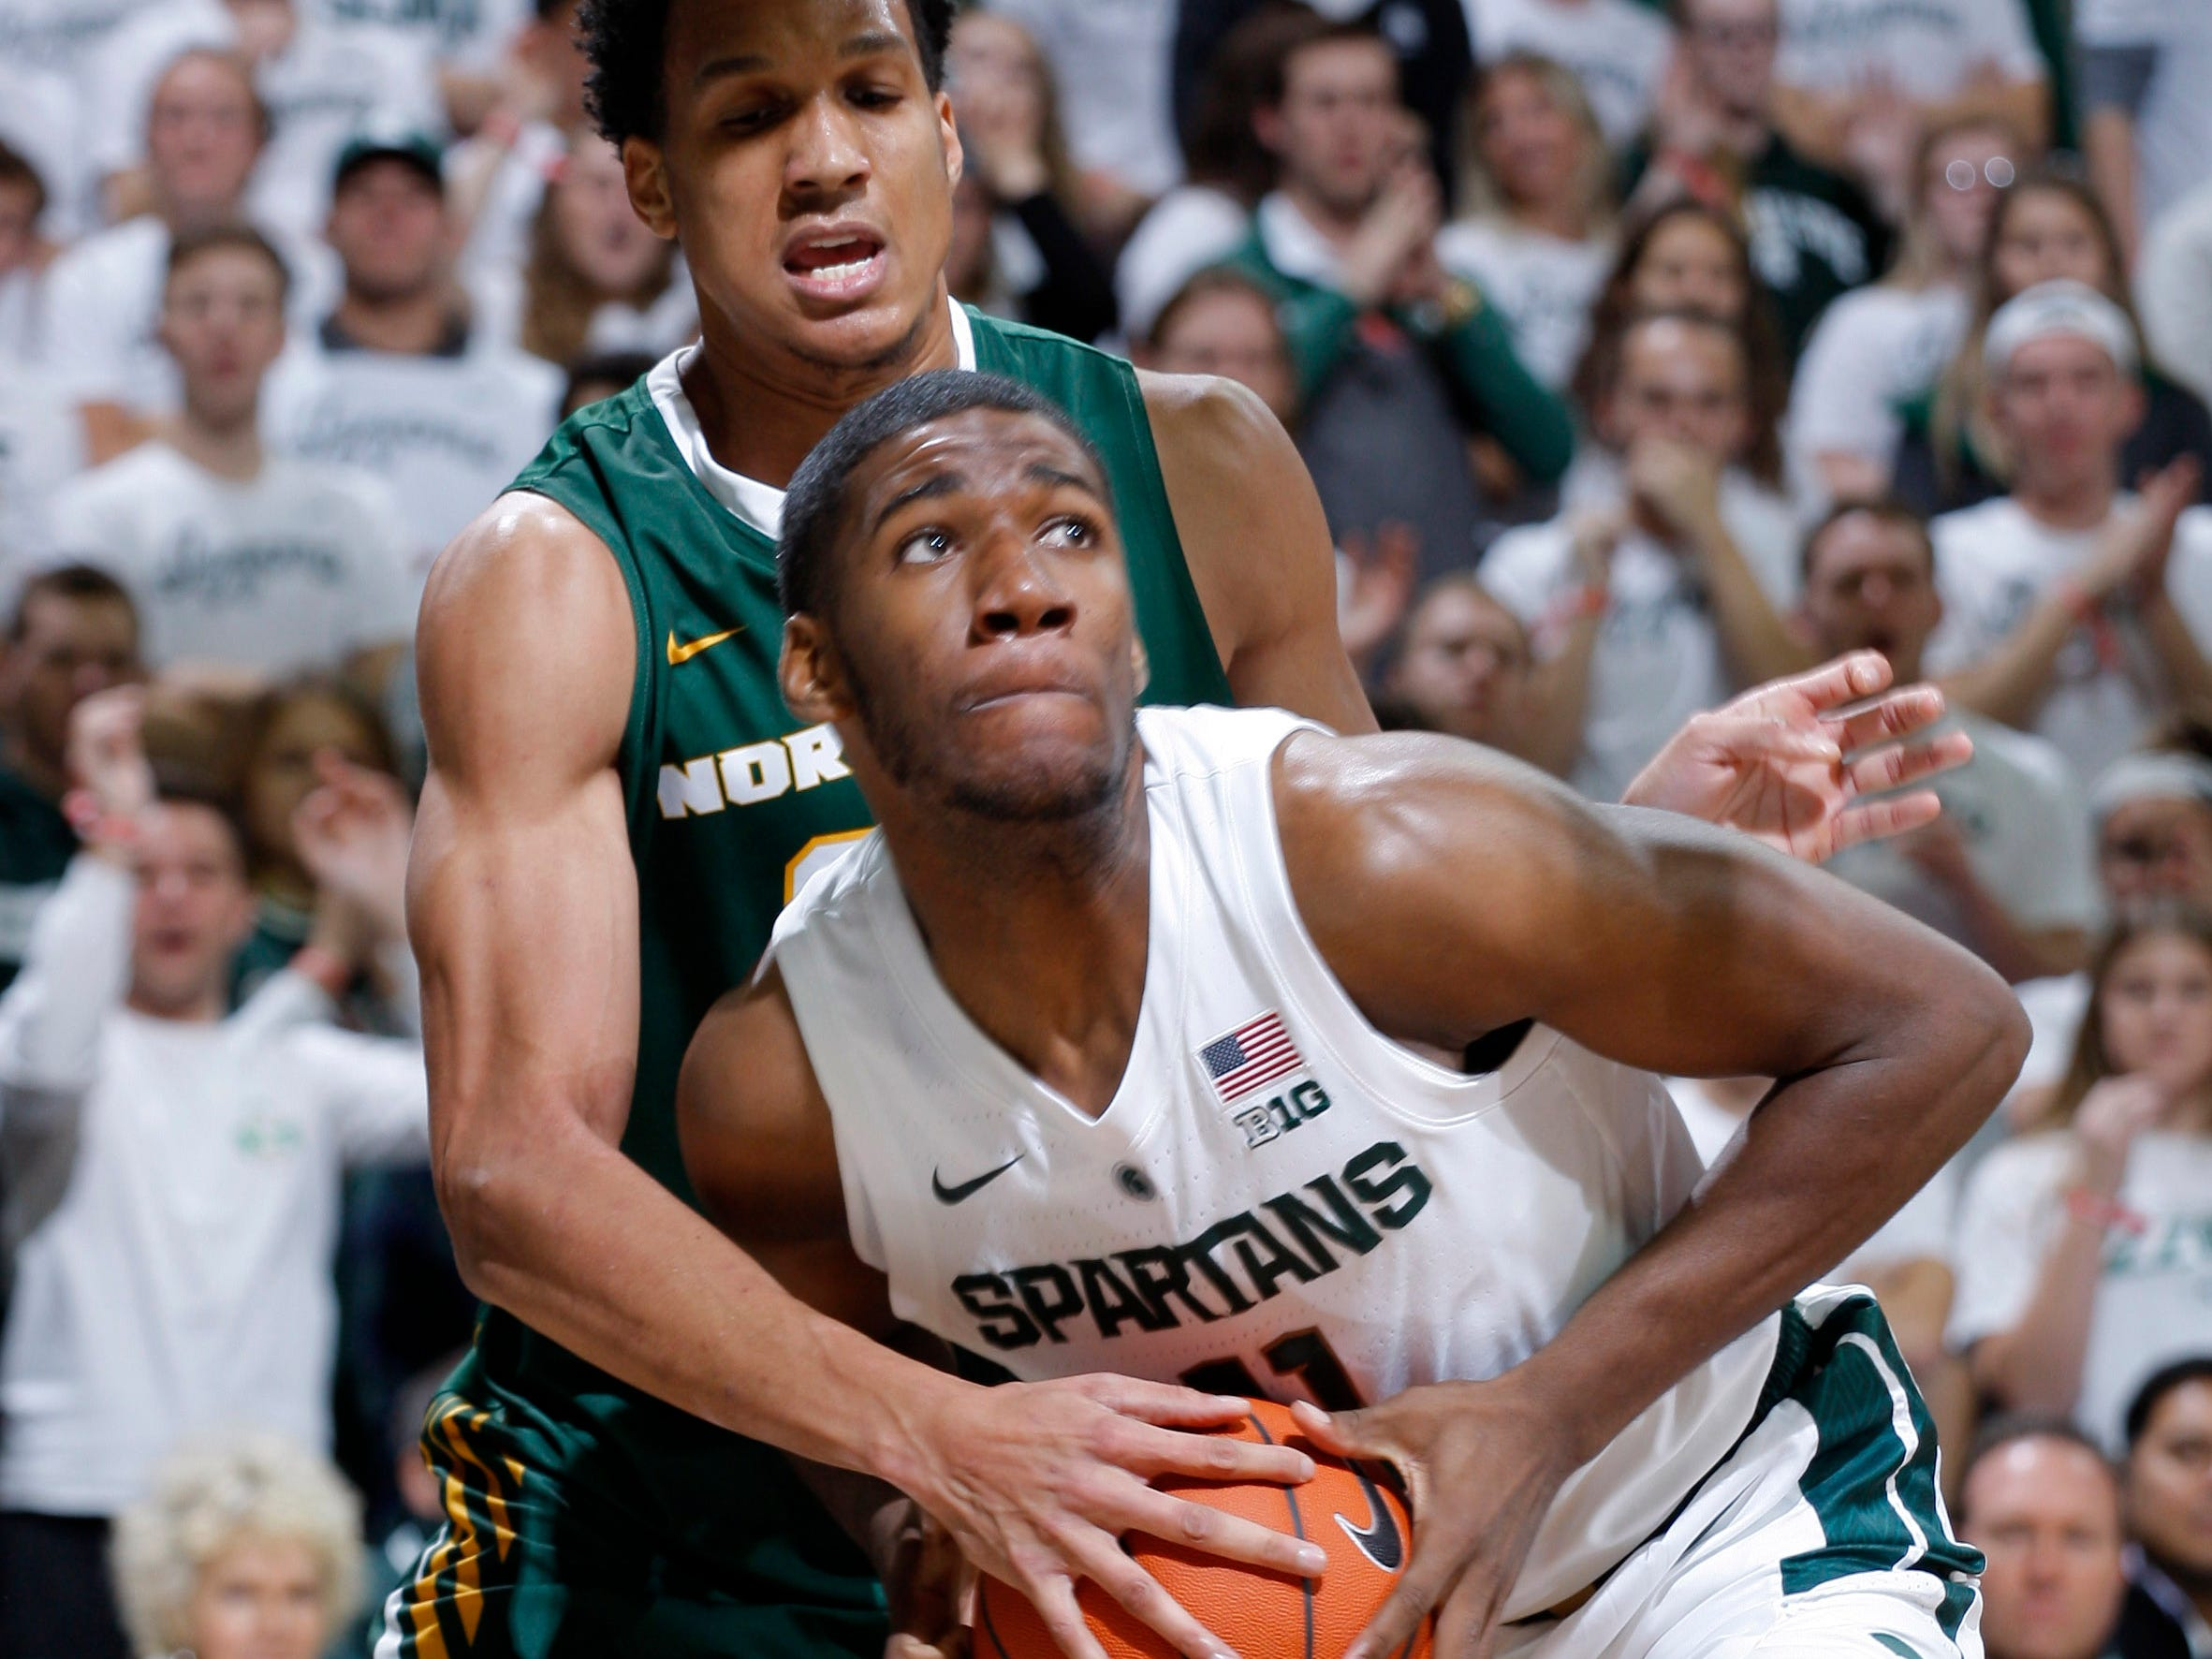 Michigan State's Aaron Henry, front, and Northern Michigan's Myles Howard, rear, vie for the ball, Tuesday, Oct. 30, 2018, in East Lansing, Mich.